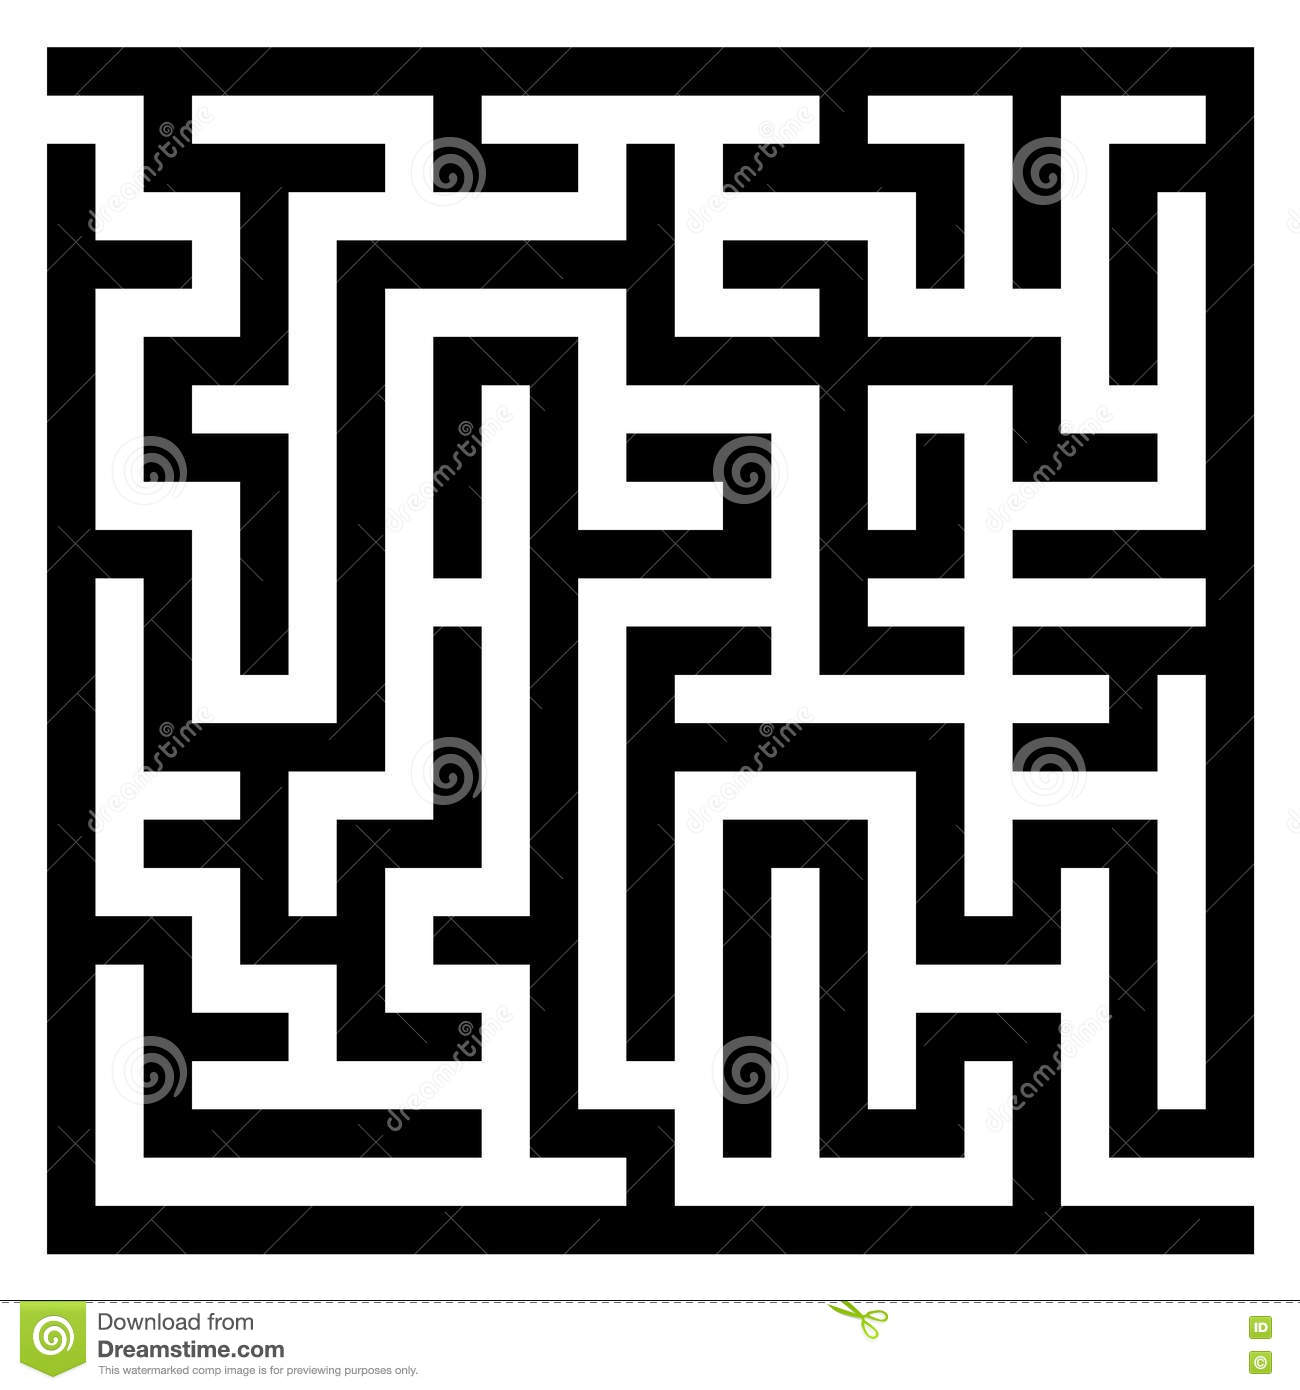 Black And White Maze Pictures to Pin on Pinterest - PinsDaddy